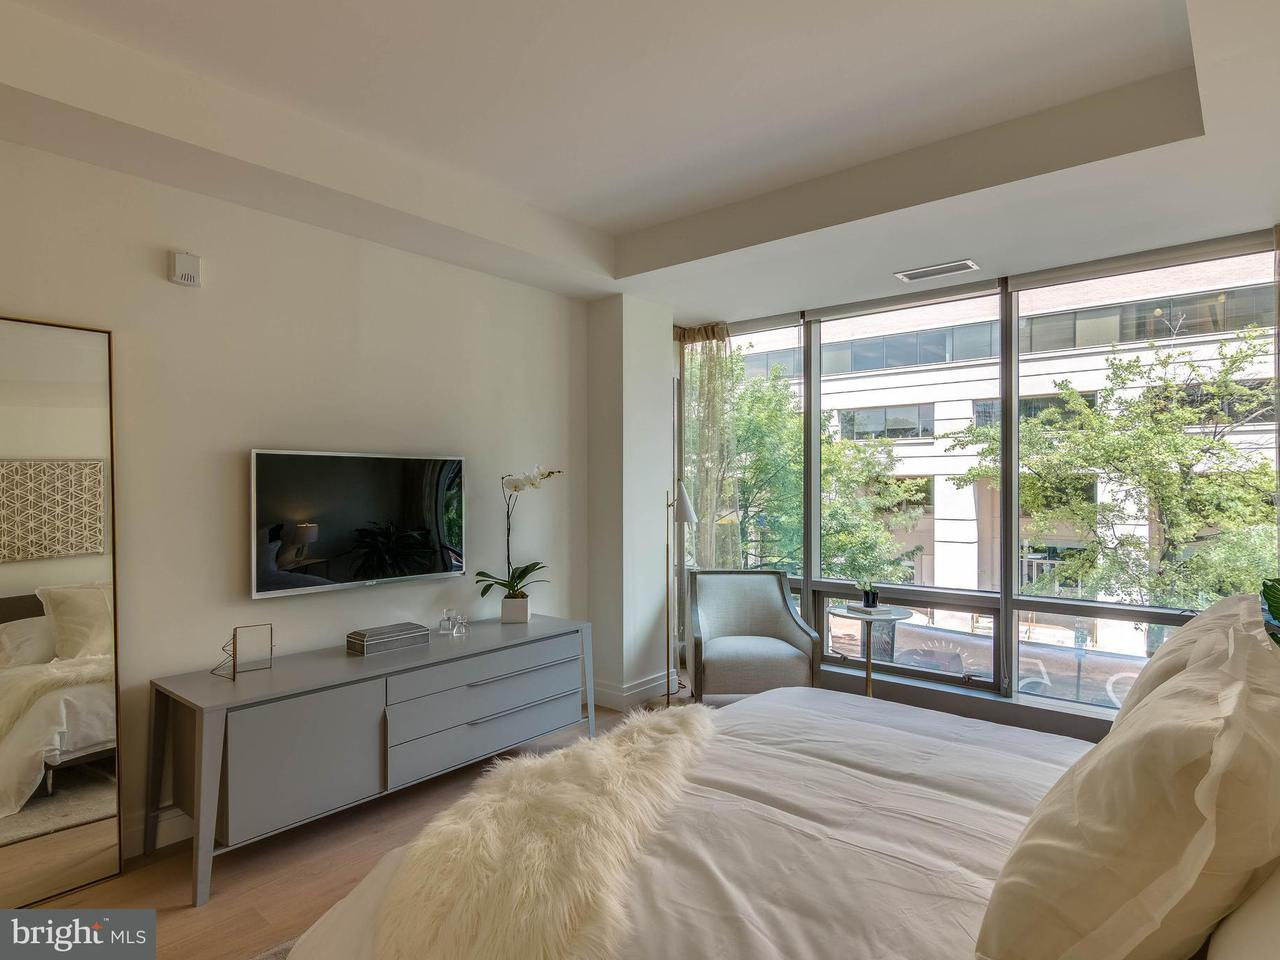 Additional photo for property listing at 2501 M St Nw #203 2501 M St Nw #203 Washington, Distrito De Columbia 20037 Estados Unidos